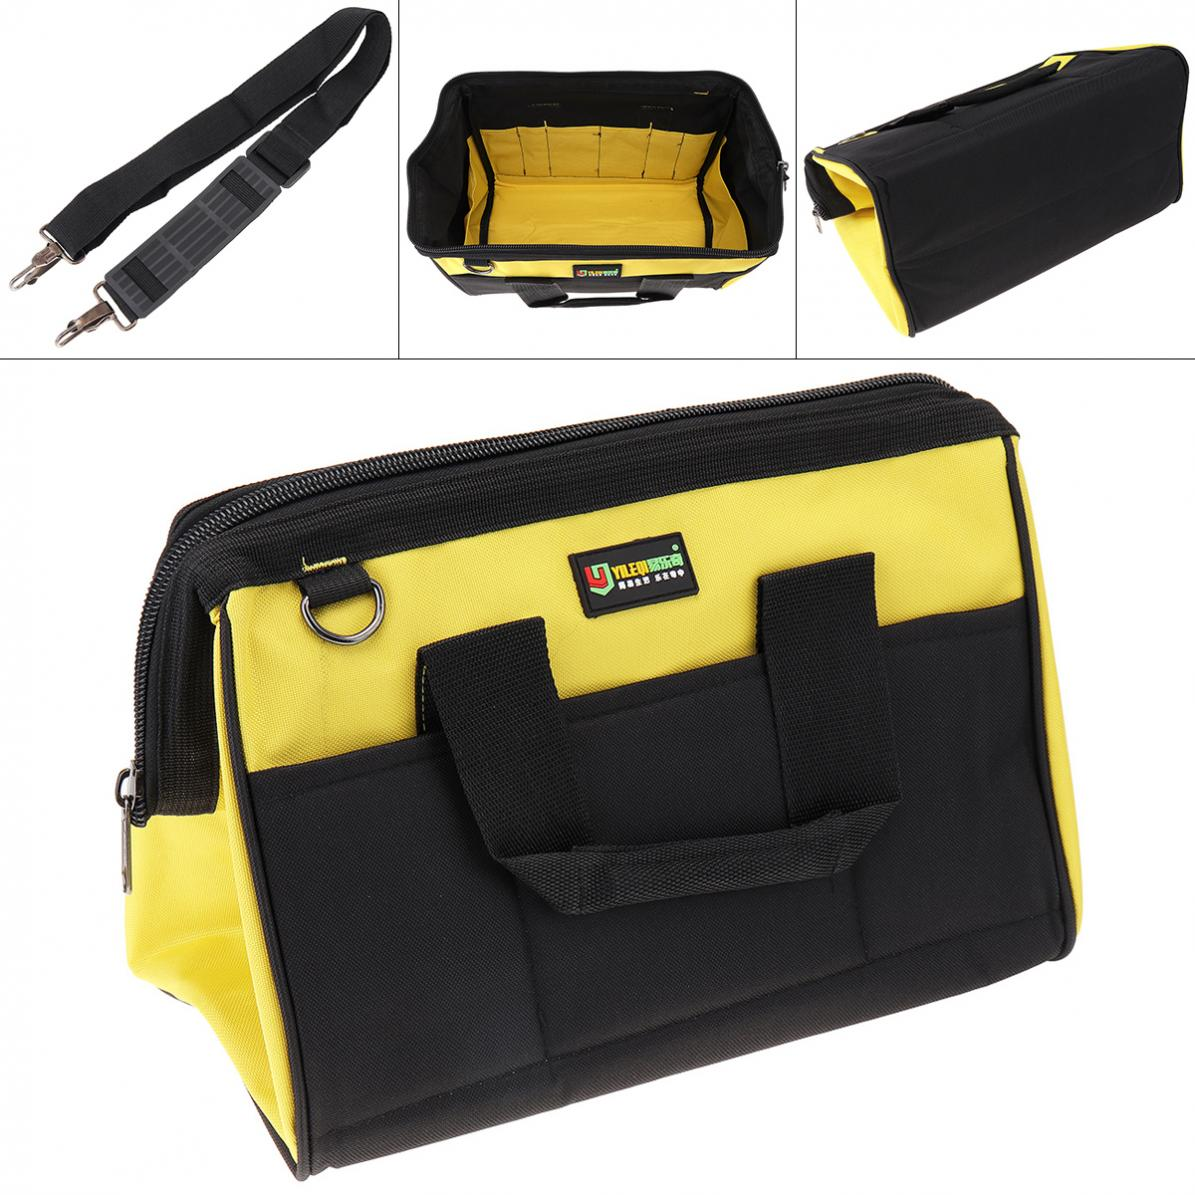 14 Inch Oxford Cloth Waterproof Hand Shoulder Dual-purpose Tool Bag With 18 Pockets And Hanging Strap For Maintenance Tools